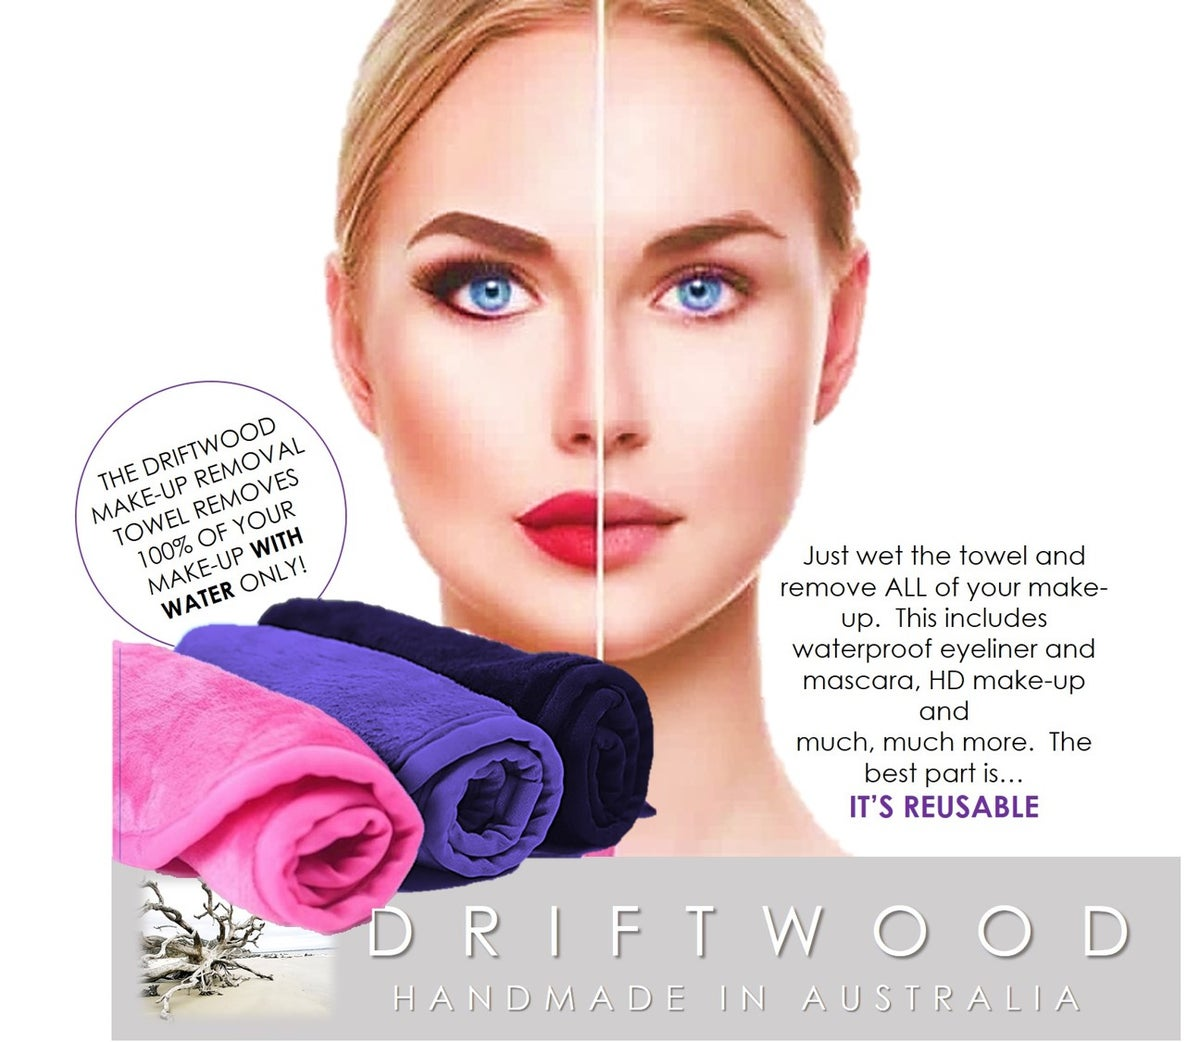 Driftwood Make-Up Removal Towel